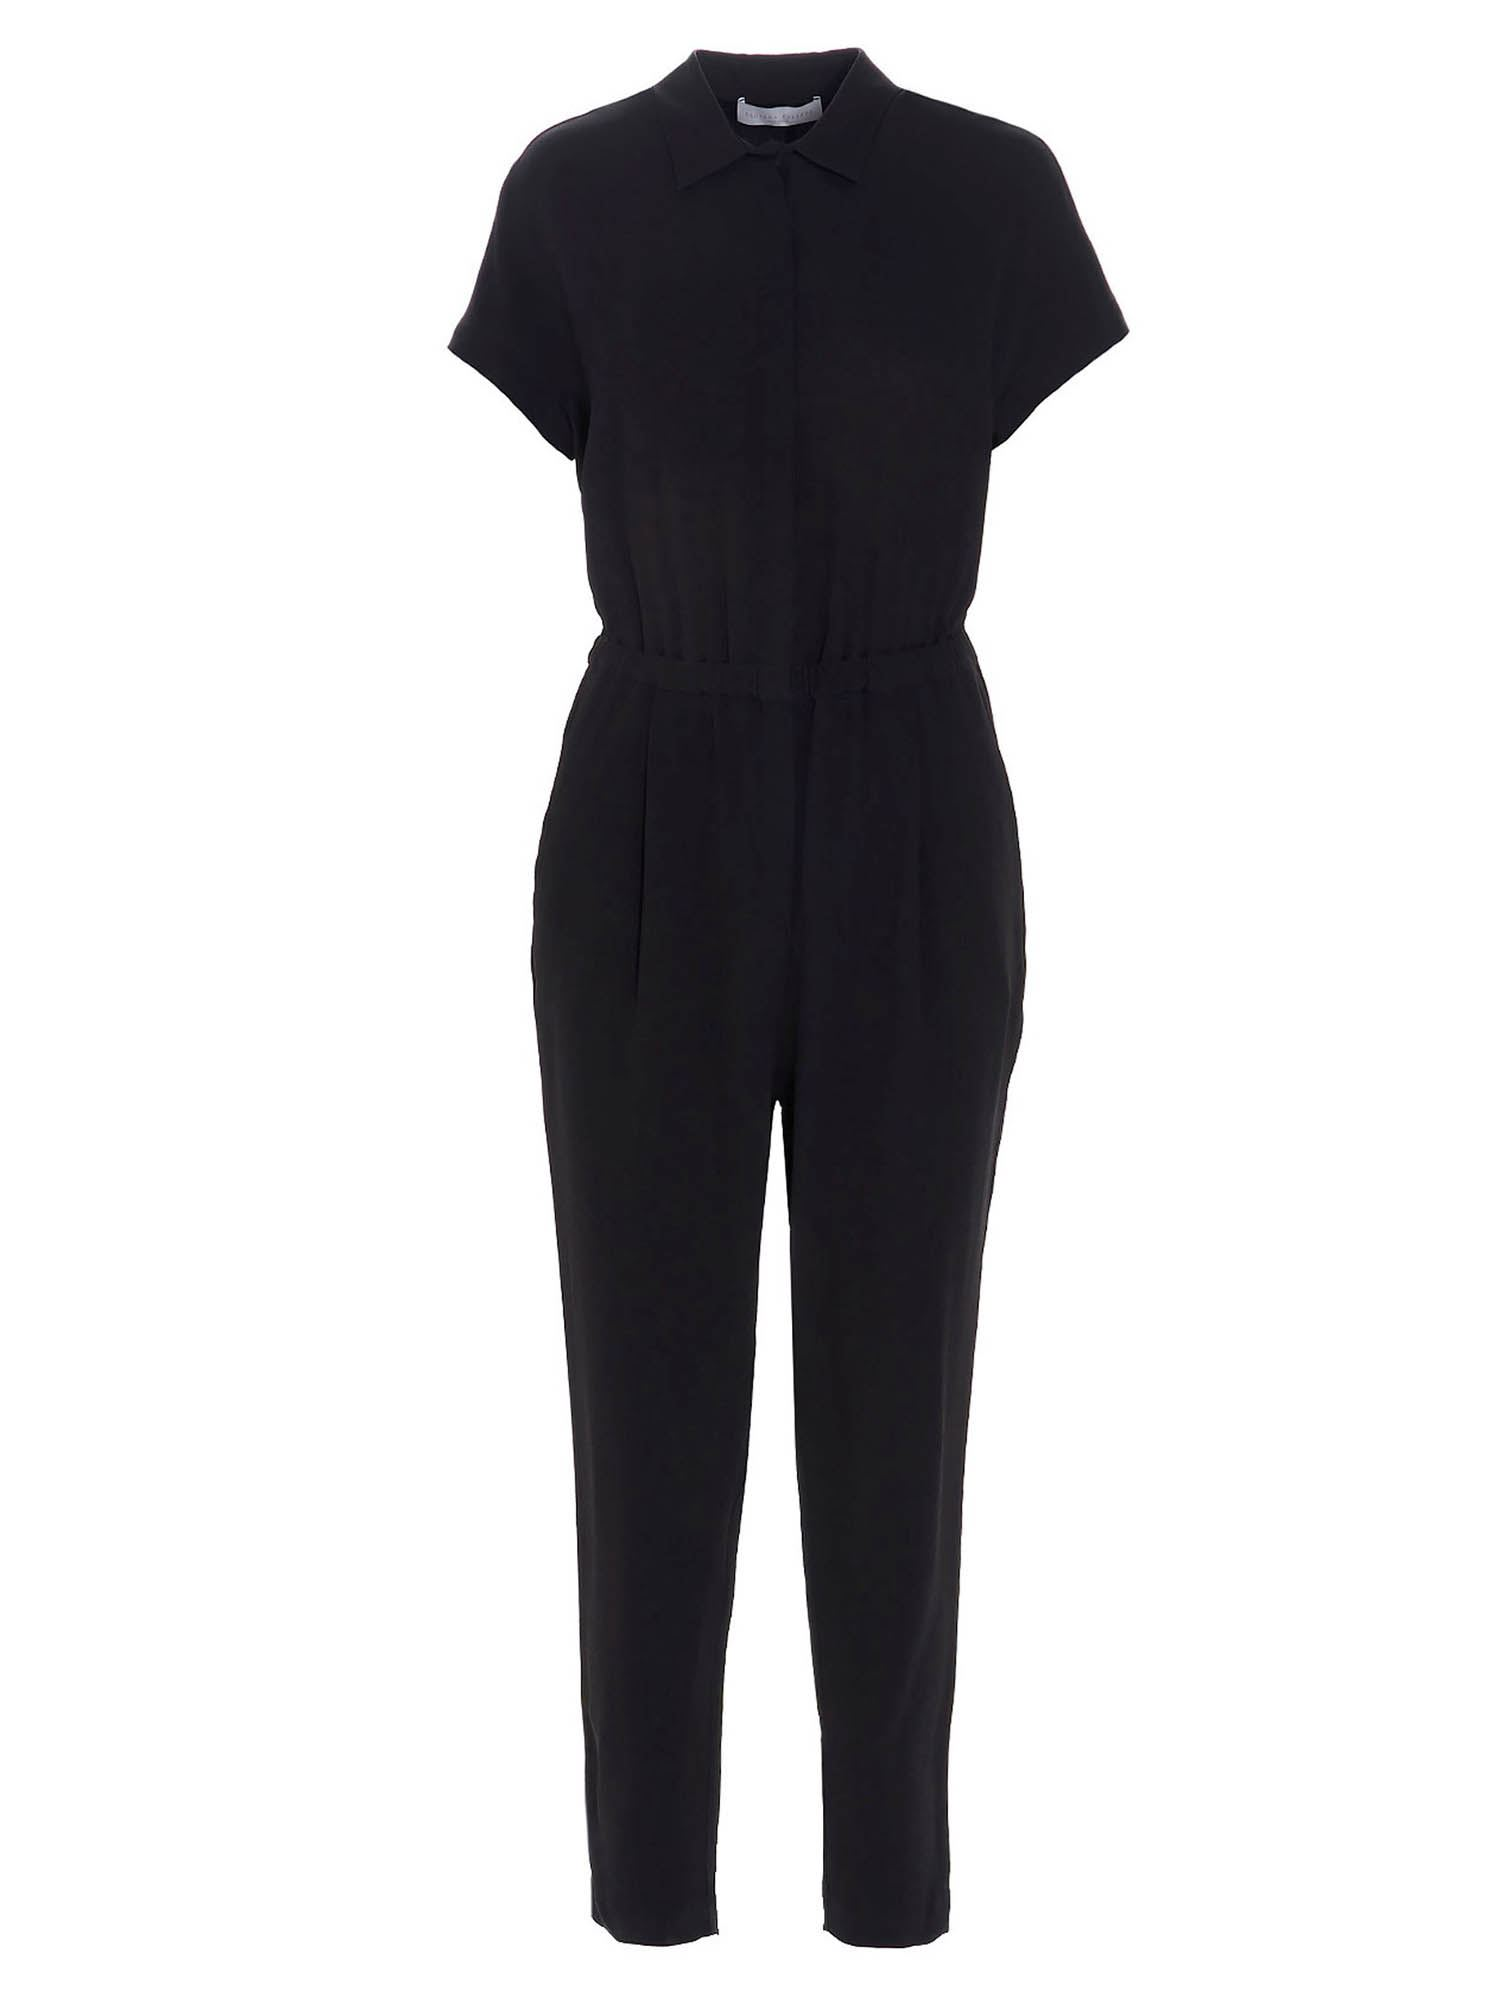 Fabiana Filippi SHORT SLEEVED OVERALLS IN BLACK